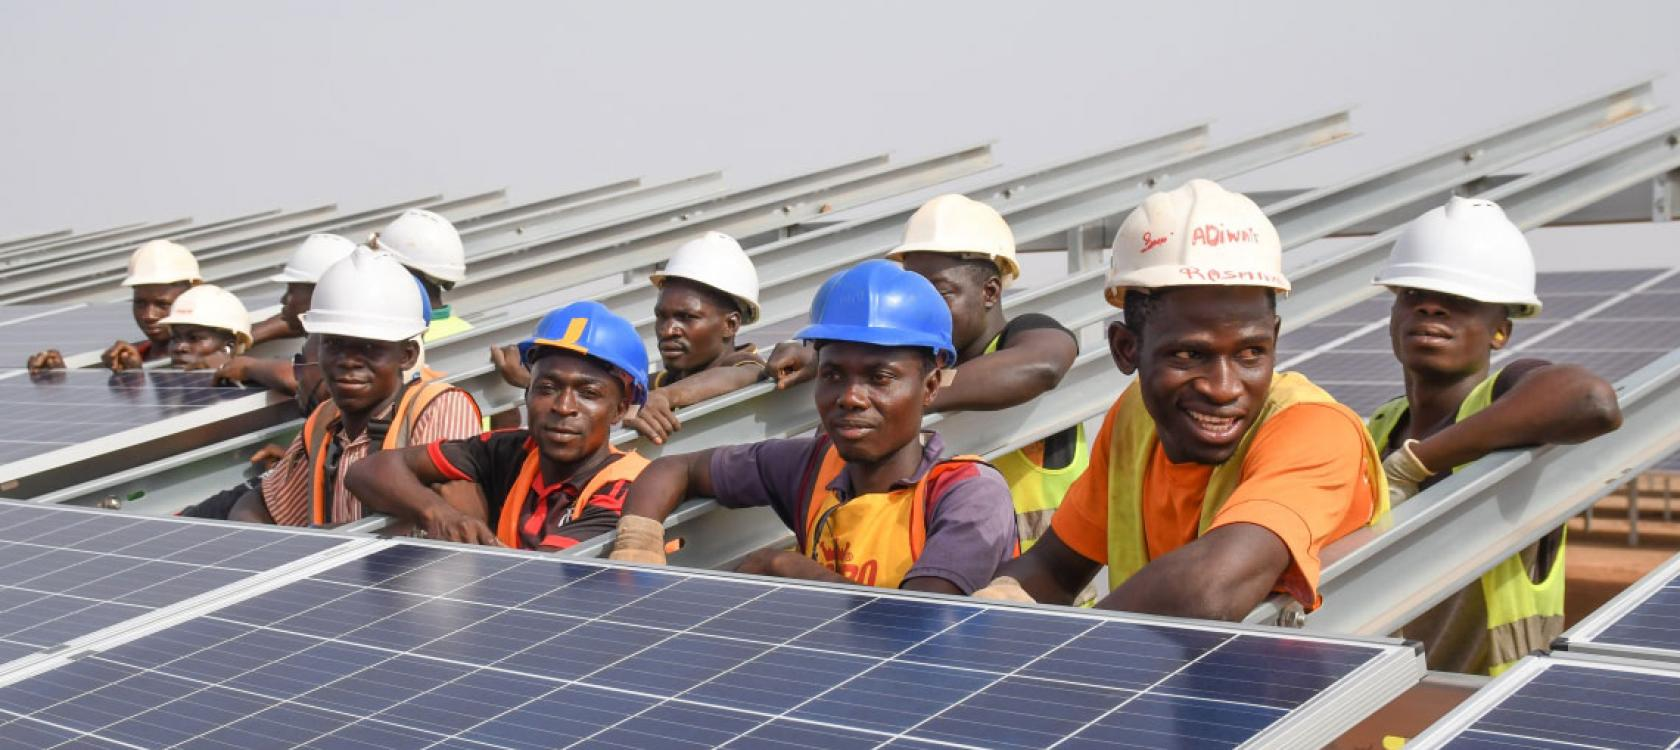 Zagtouli, Burkina Faso's photovoltaic power plant